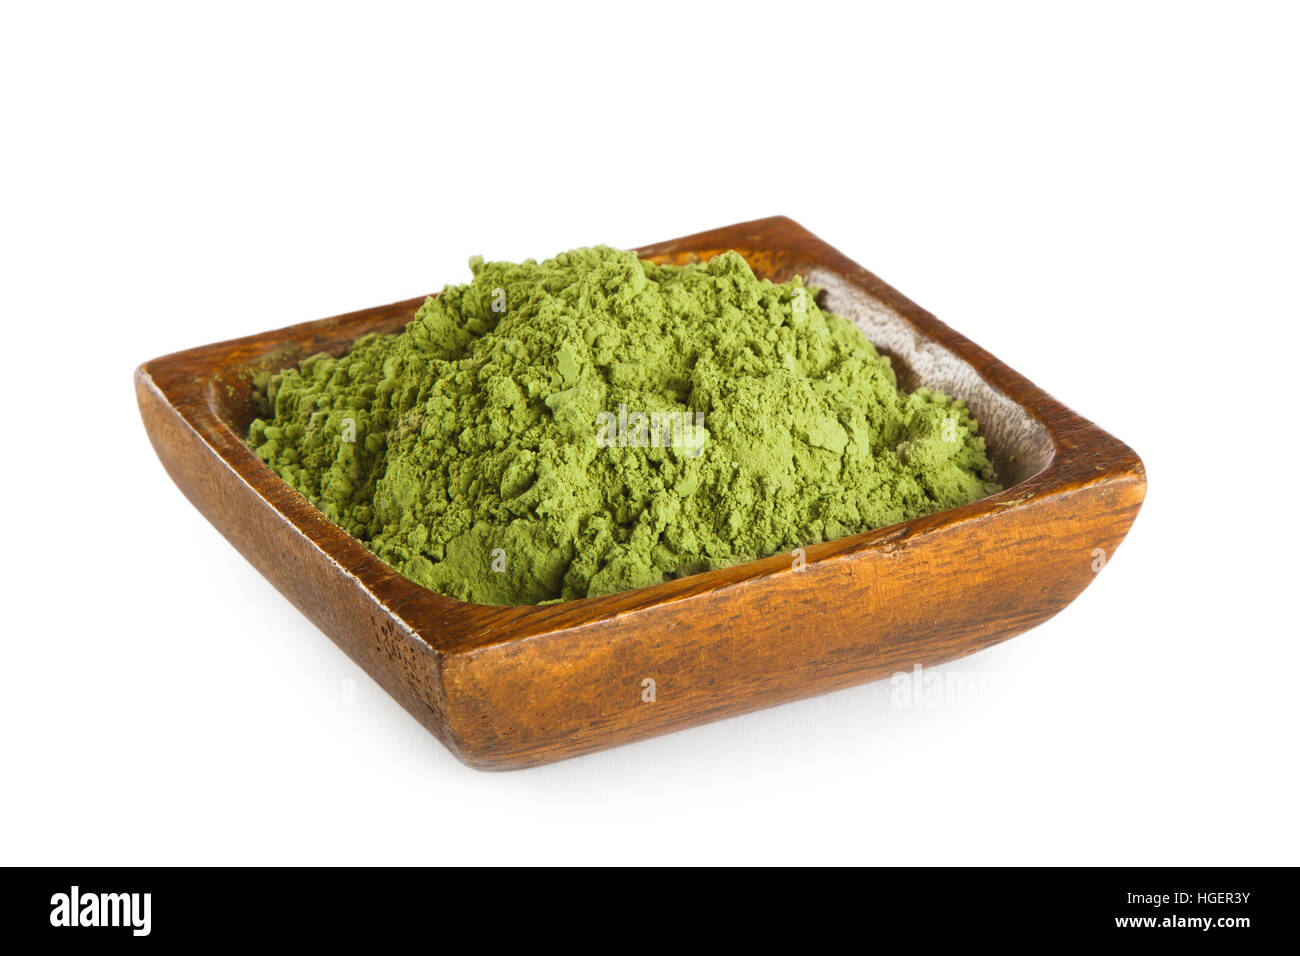 Matcha, powdered green tea isolated on white background. Superfood - Stock Image